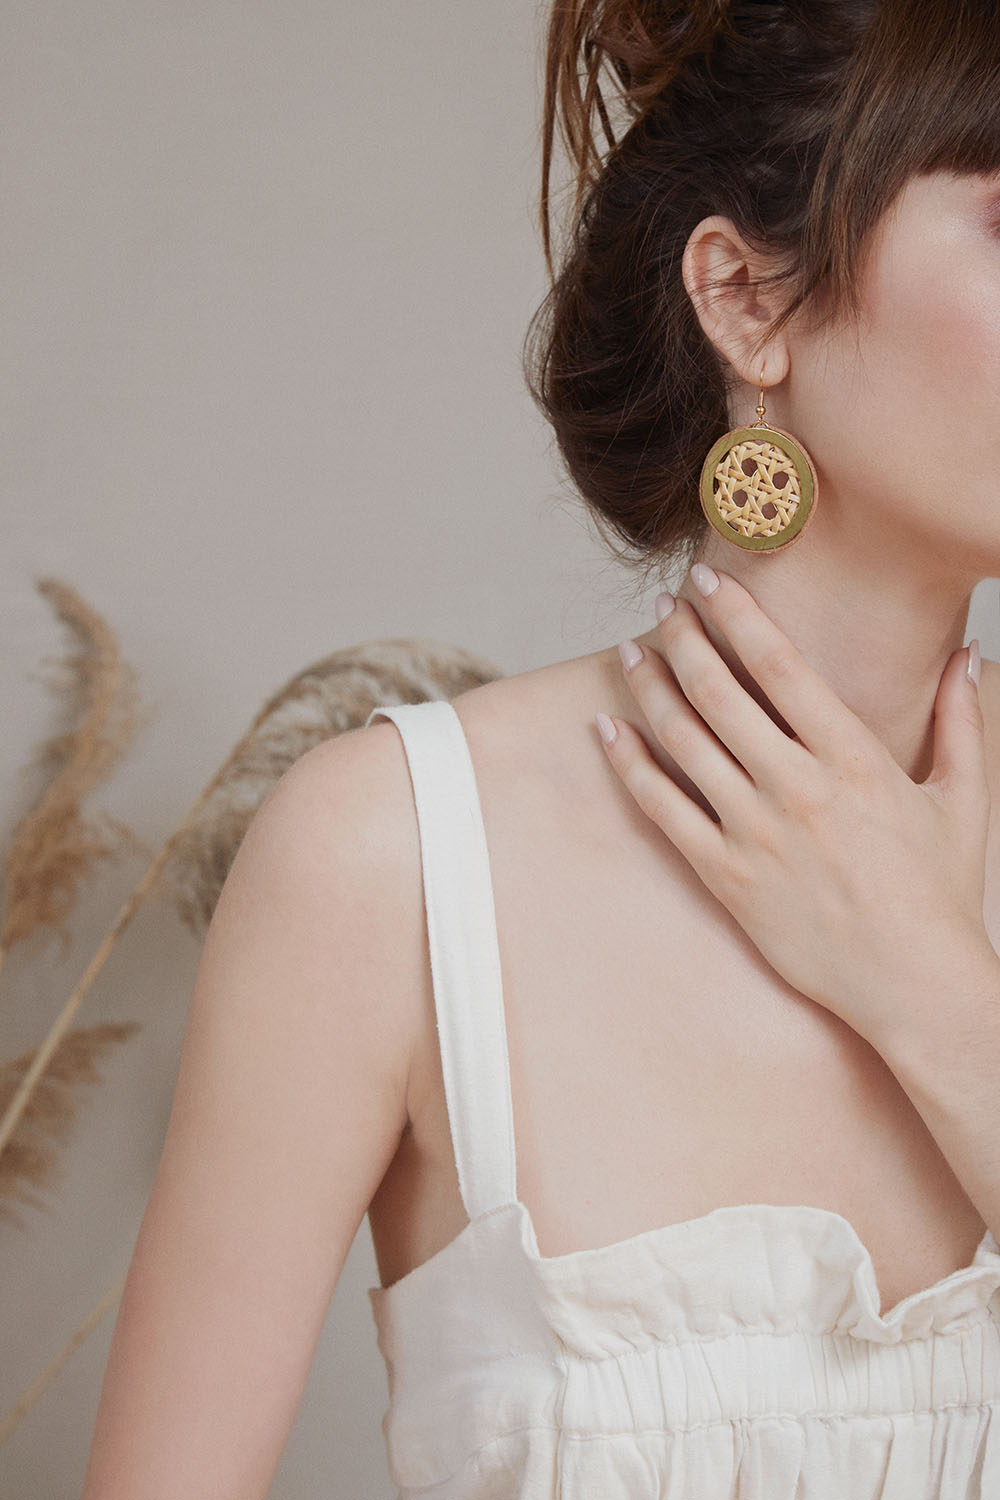 Rotan Medallion earrings (click here for details)